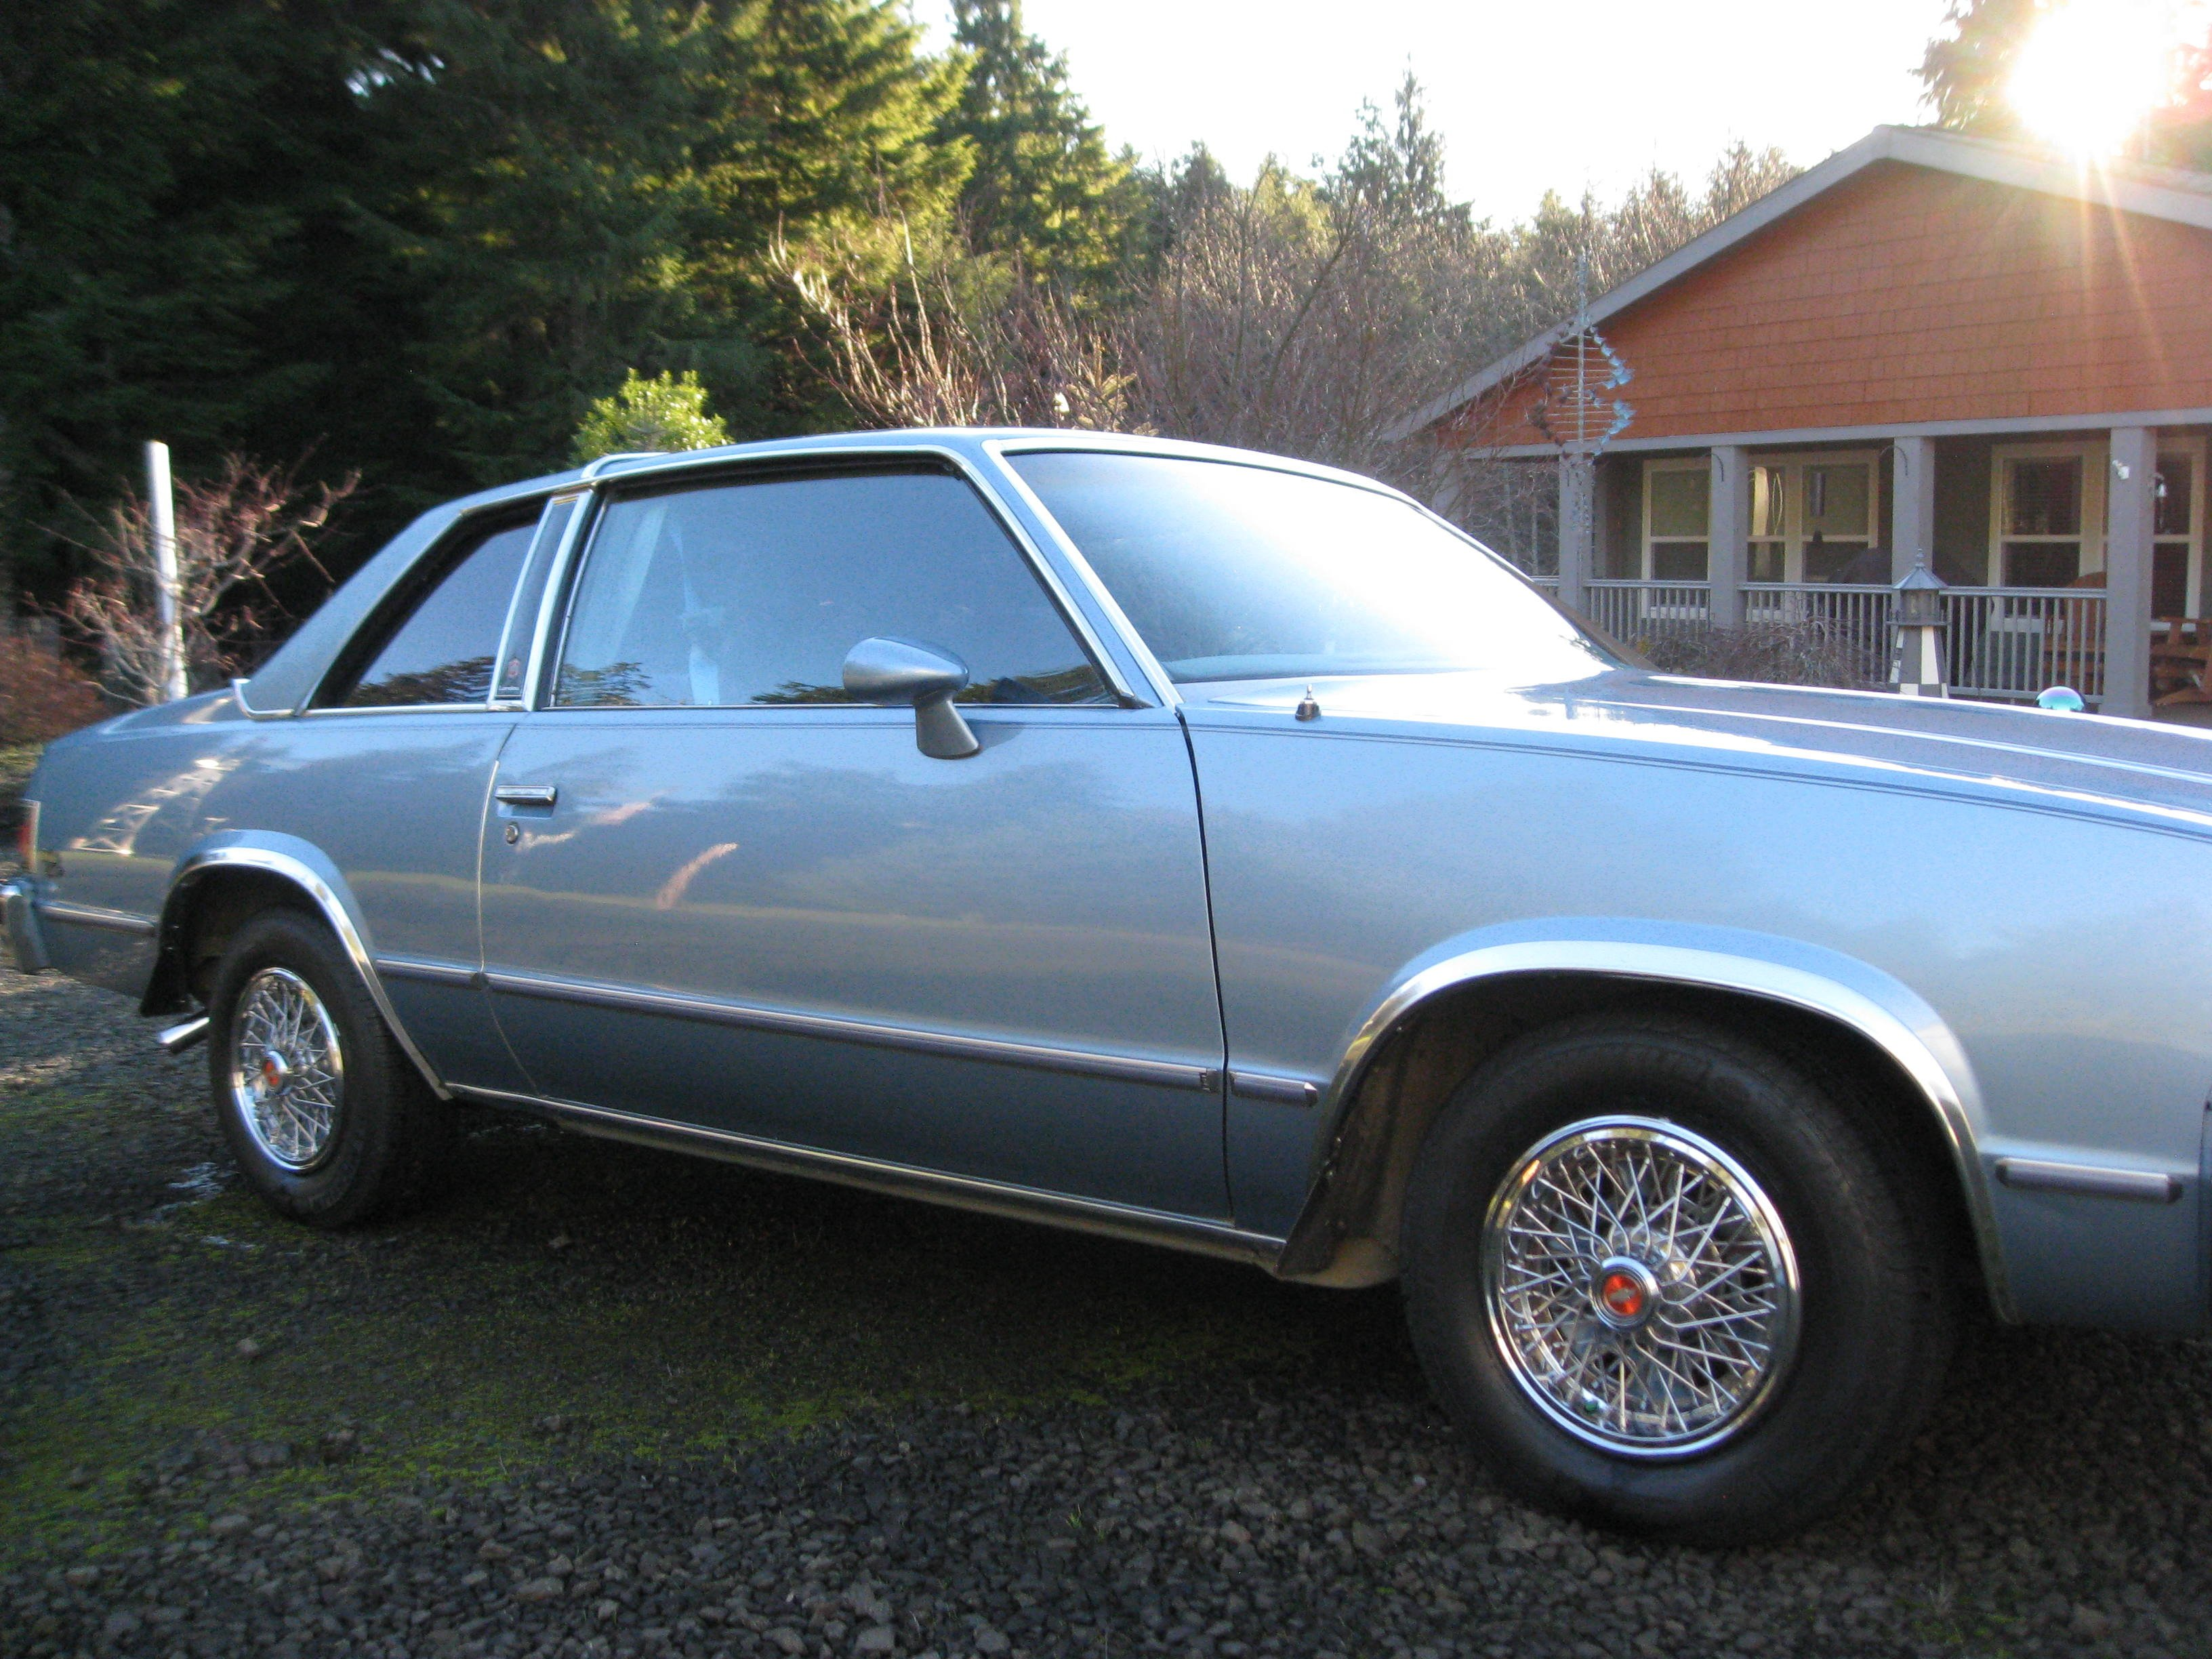 1979 Chevrolet Malibu Classics For Sale On Autotrader 1978 Mustang Radio Wiring